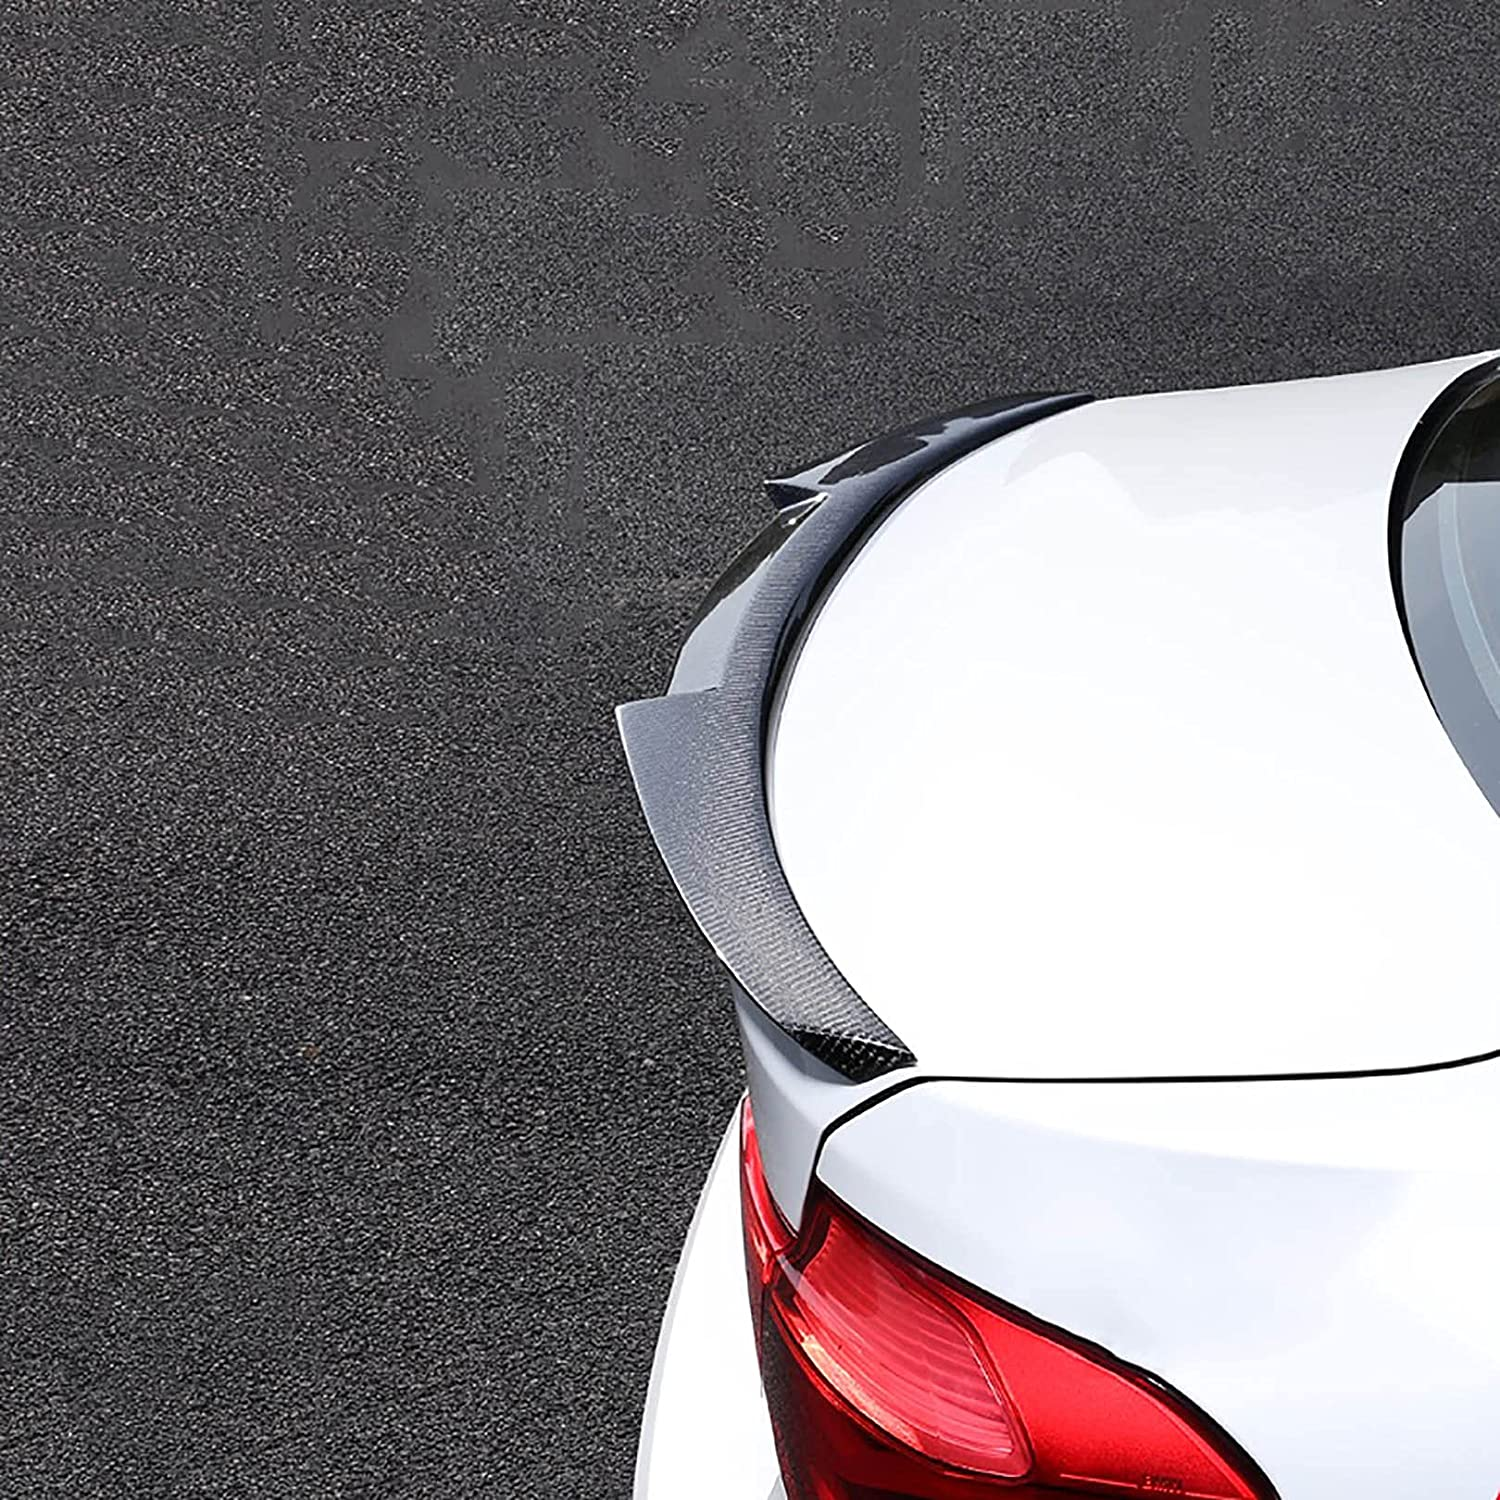 ZINIUKEJI Finally resale start Limited time trial price Rear Wing Spoiler Car Accessories Body C-S Appearance